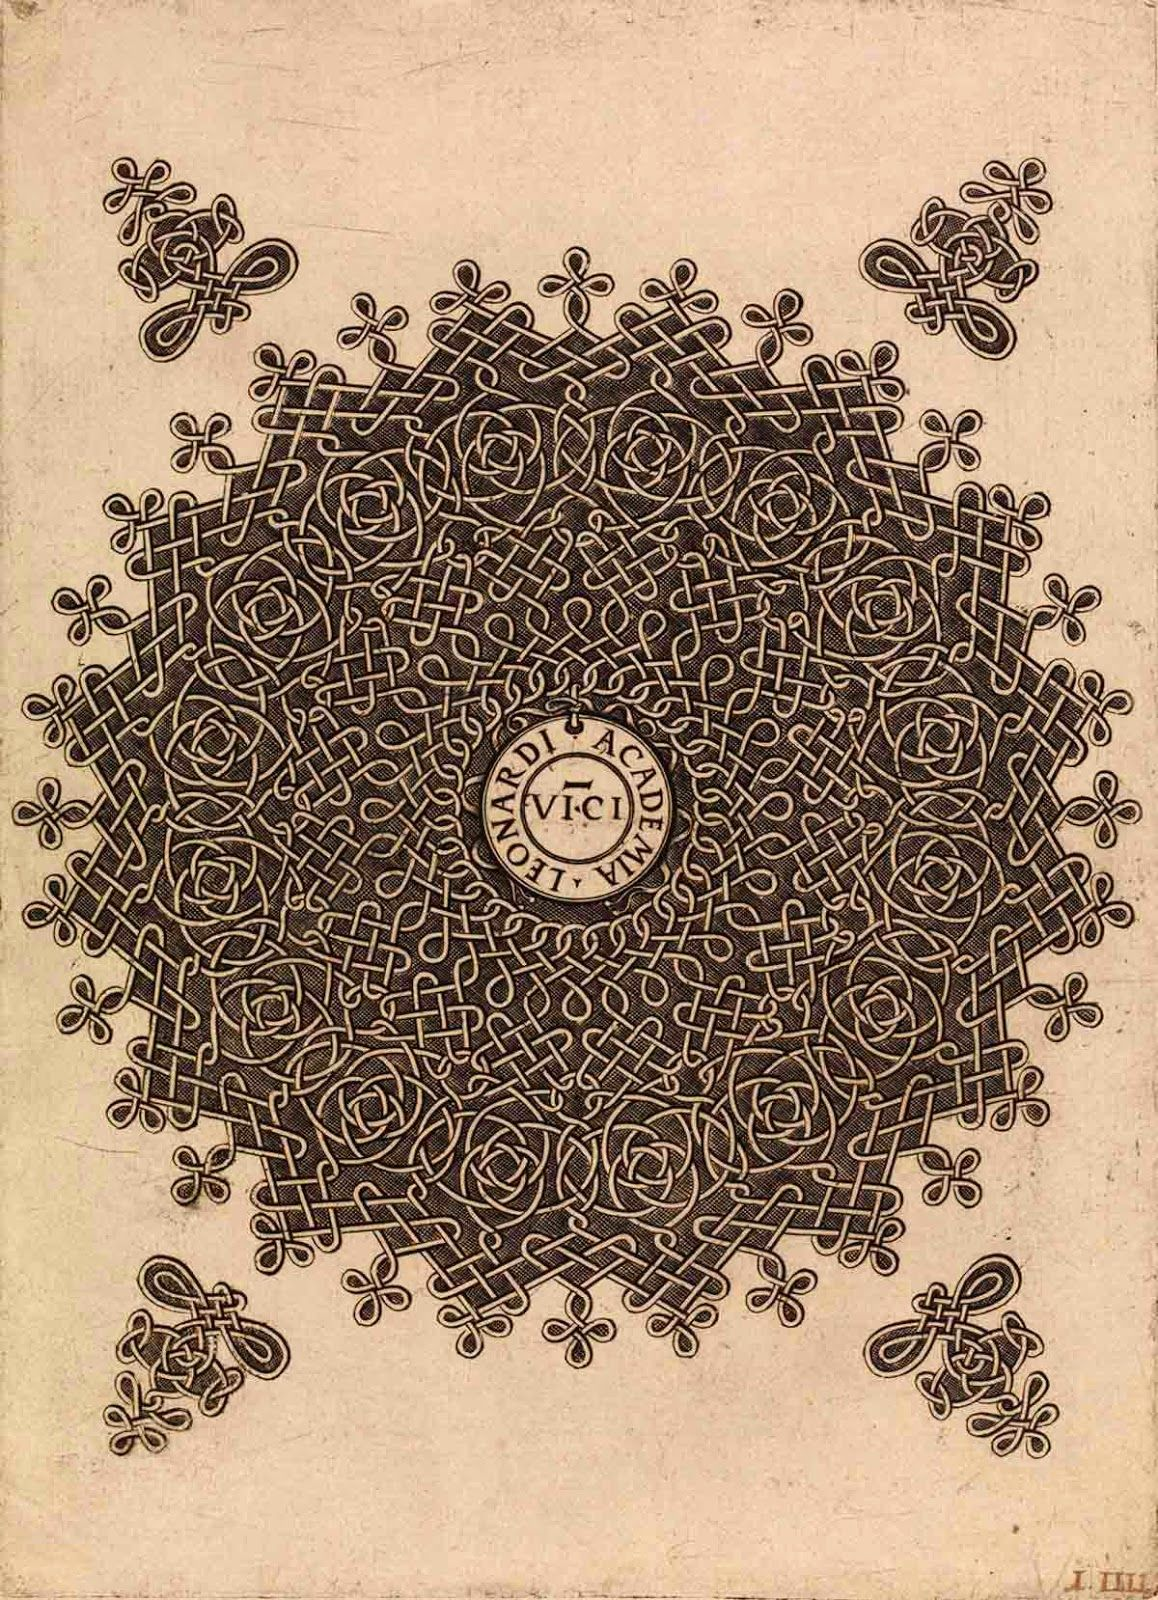 (Leonardo da Vinci Academy) Knot pattern after Leonardo da Vinci about 1495 engraving 29 x 21 cm British Museum, London